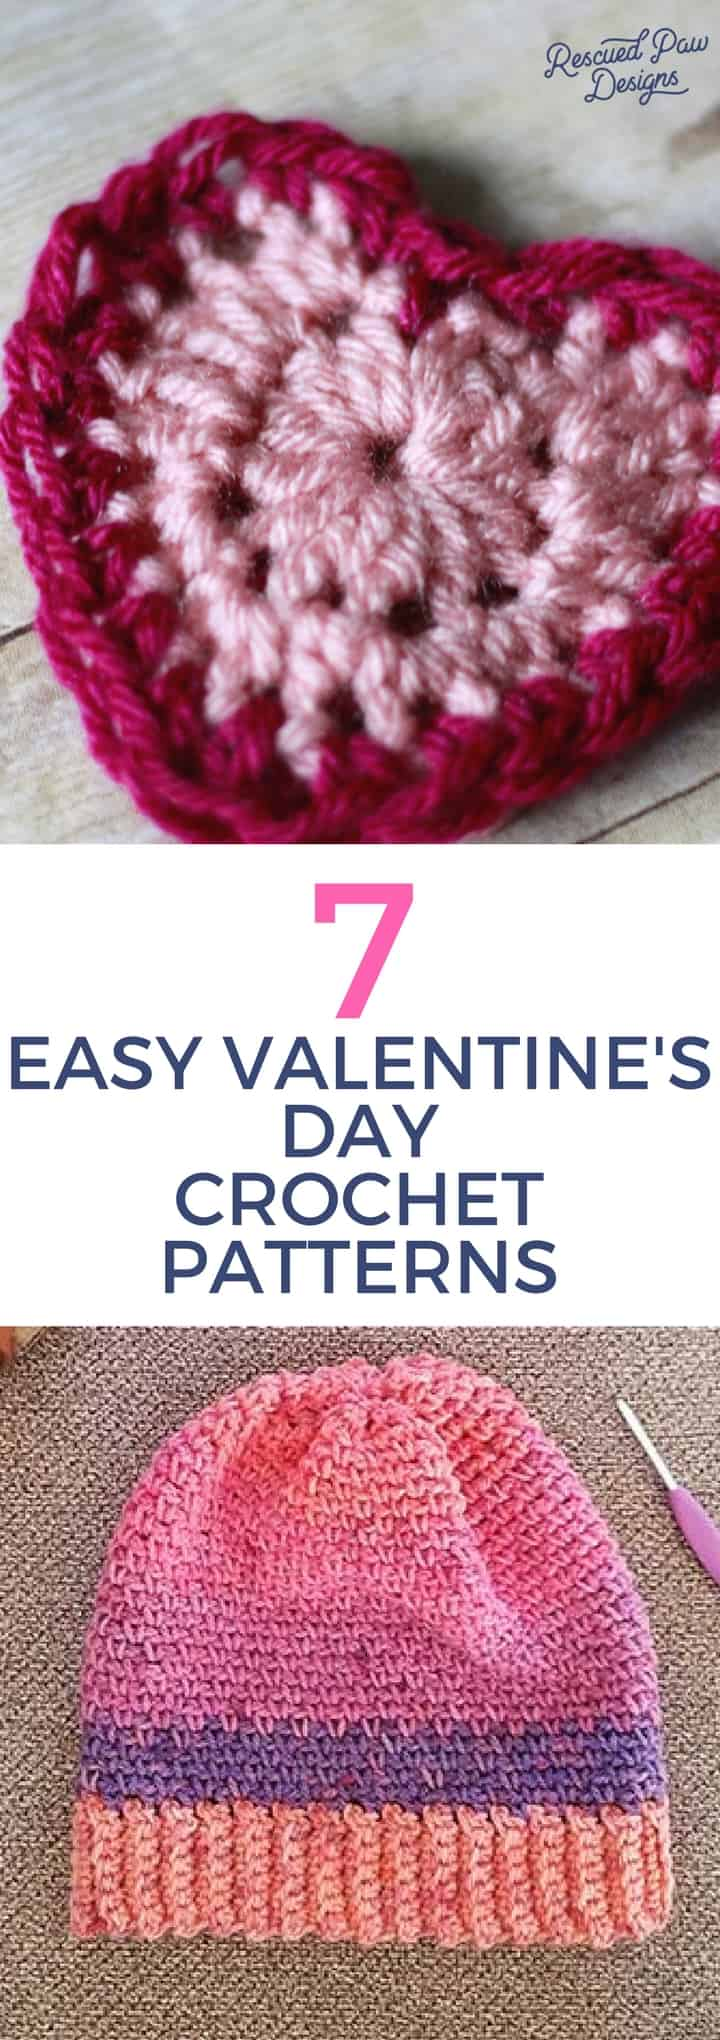 7 Easy Valentine\'s Day Crochet Patterns - Crochet Valentines Day ...